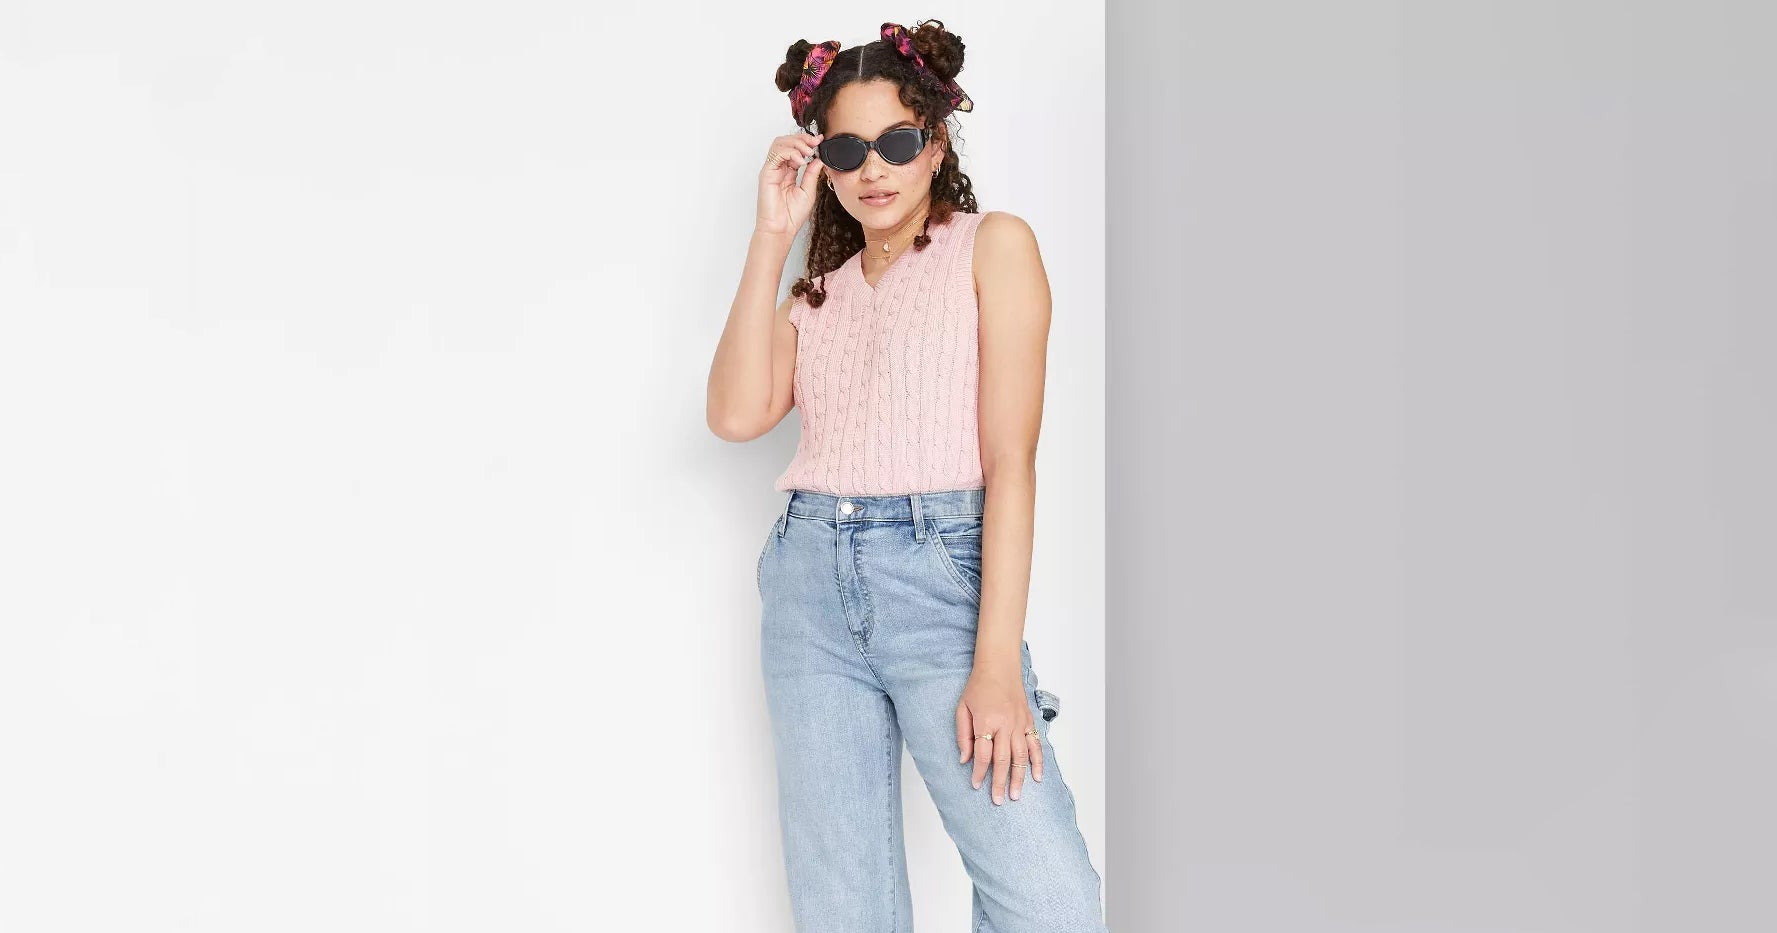 For Just $25, You Can Buy The Most Viral Jeans on TikTok… While They Last